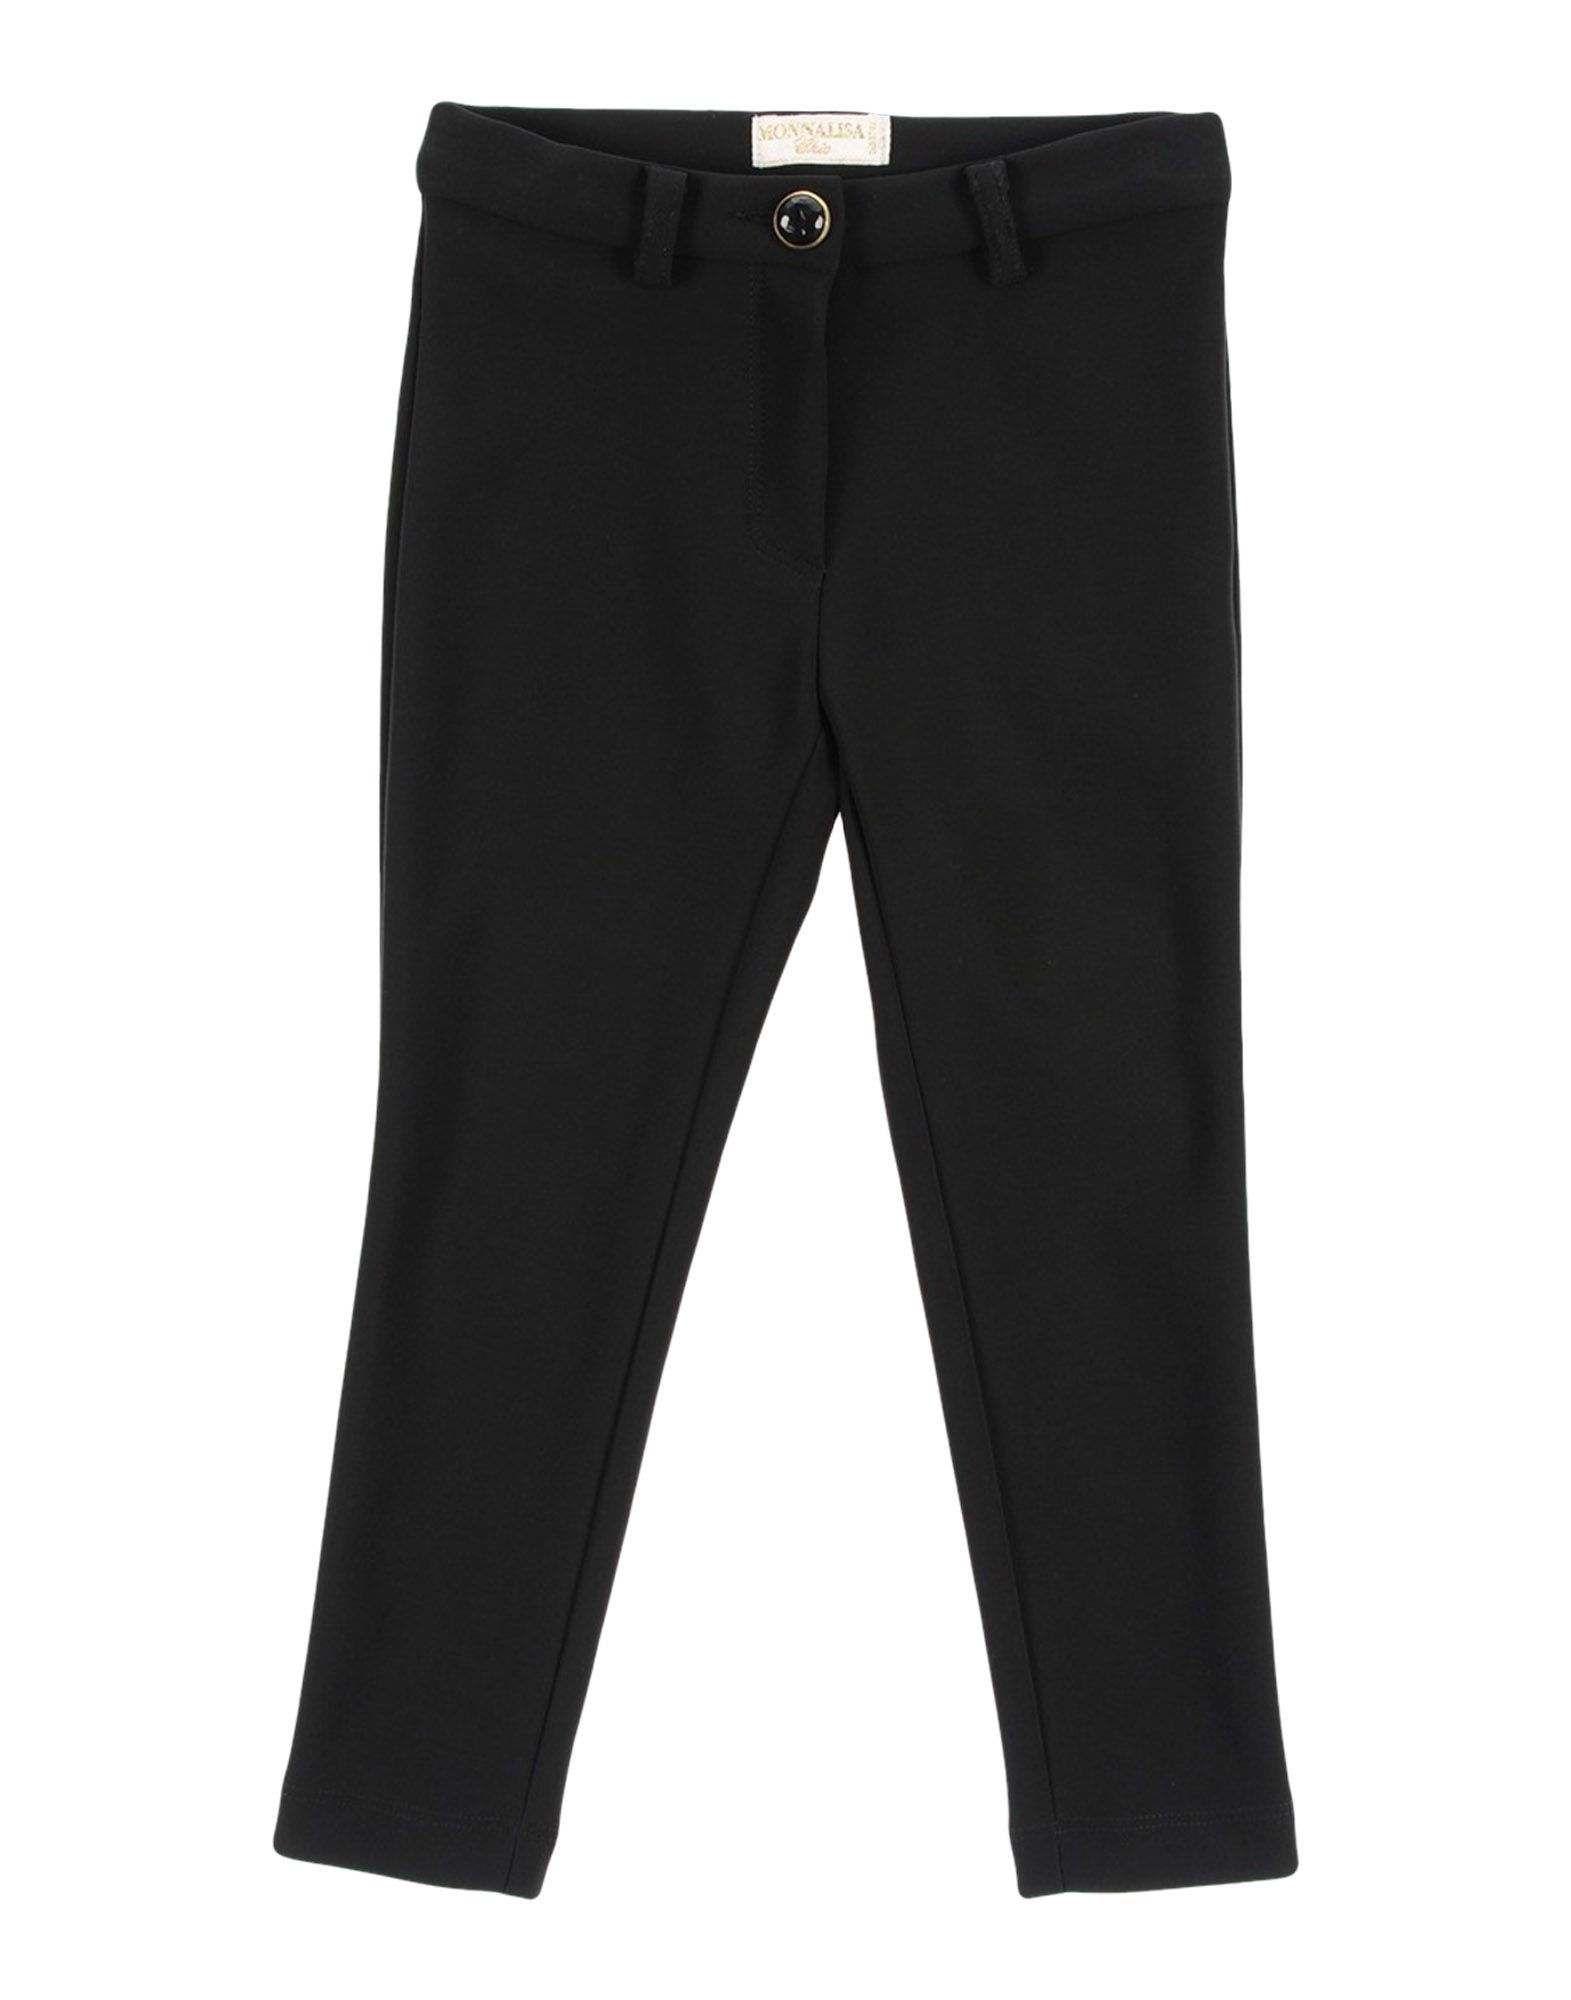 MONNALISA CHIC Casual Pants in Black